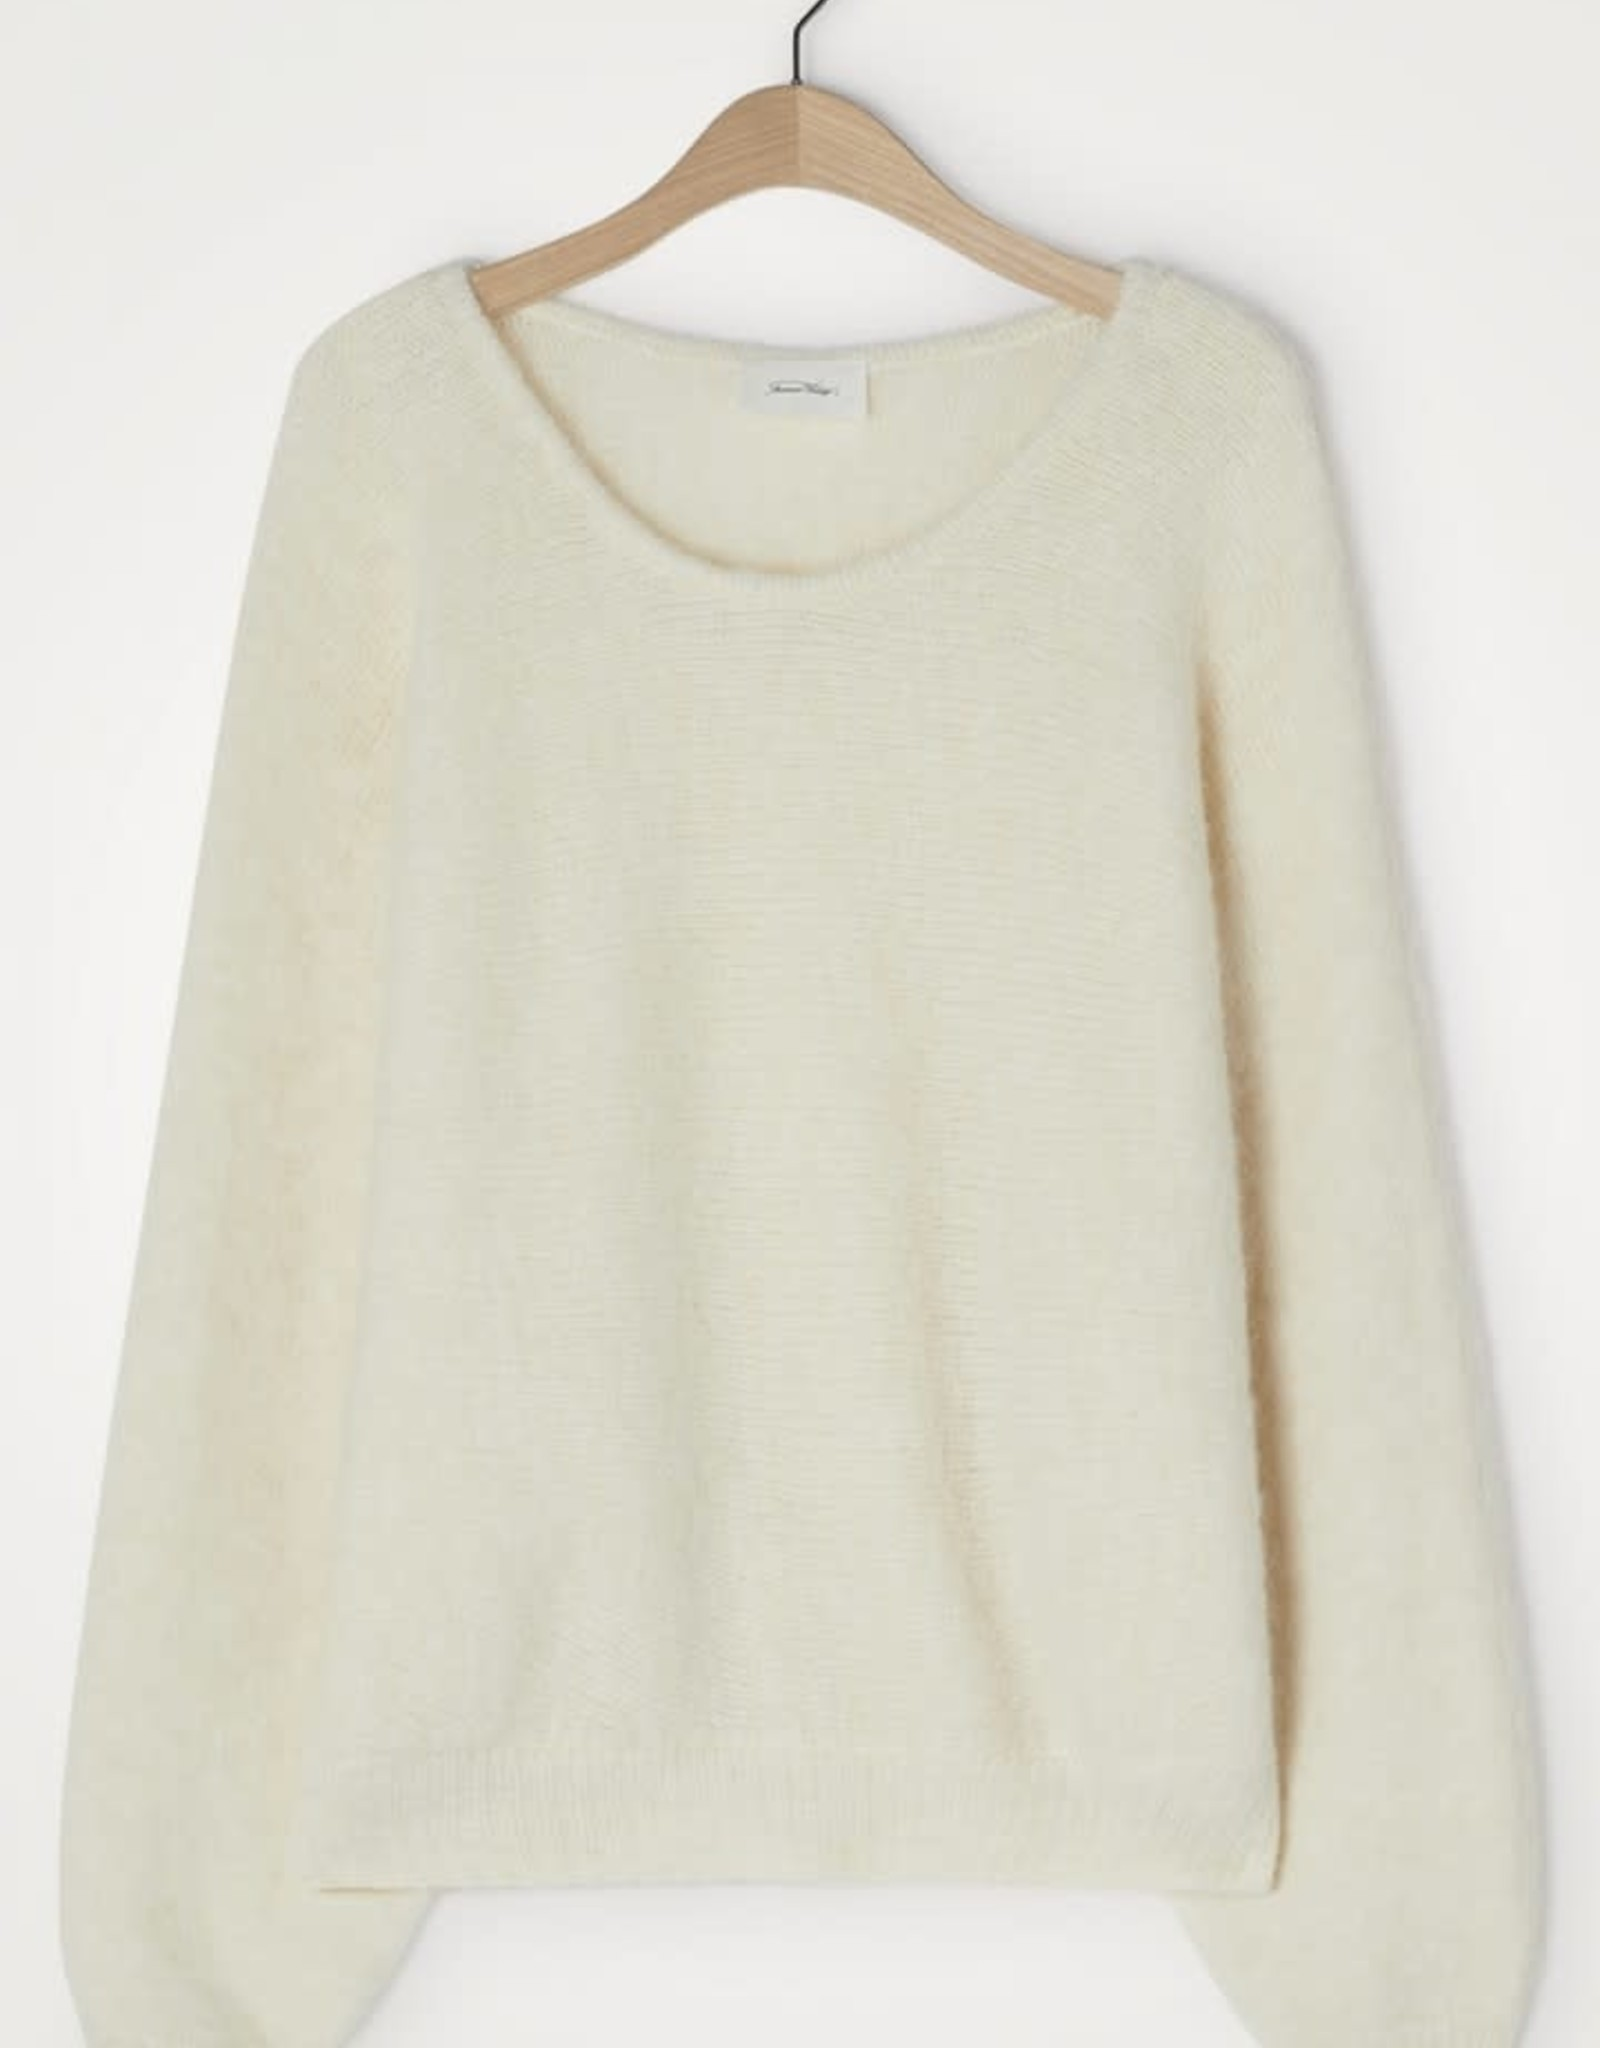 American Vintage Pull 'East' - Coll rond vleermuismouwen - Nacre Chiné - American Vintage